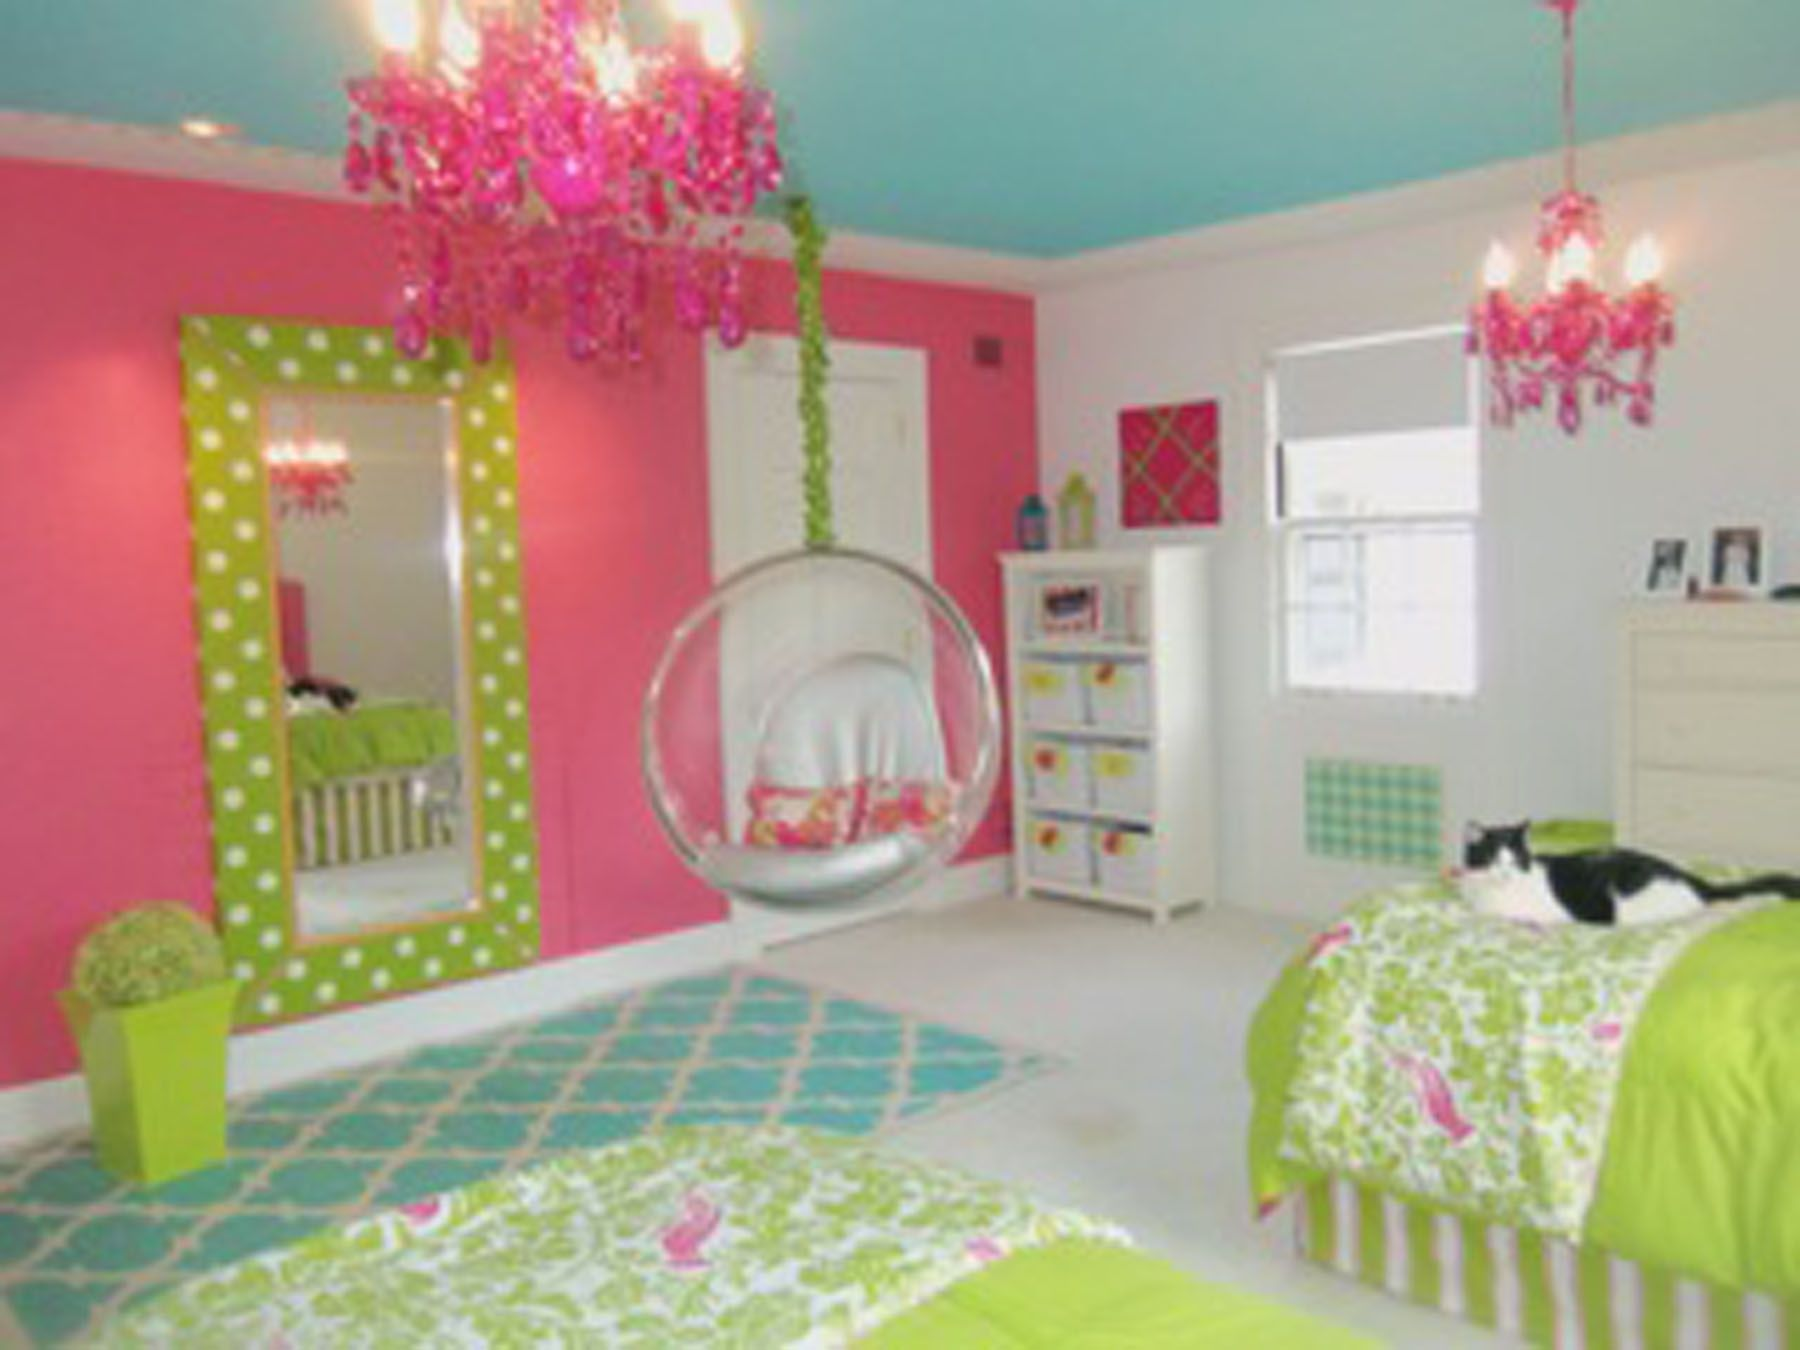 Girls Room Decorations Teenage Room Decor Pinterest Cutie Teen Bedroom Dcor With Wall